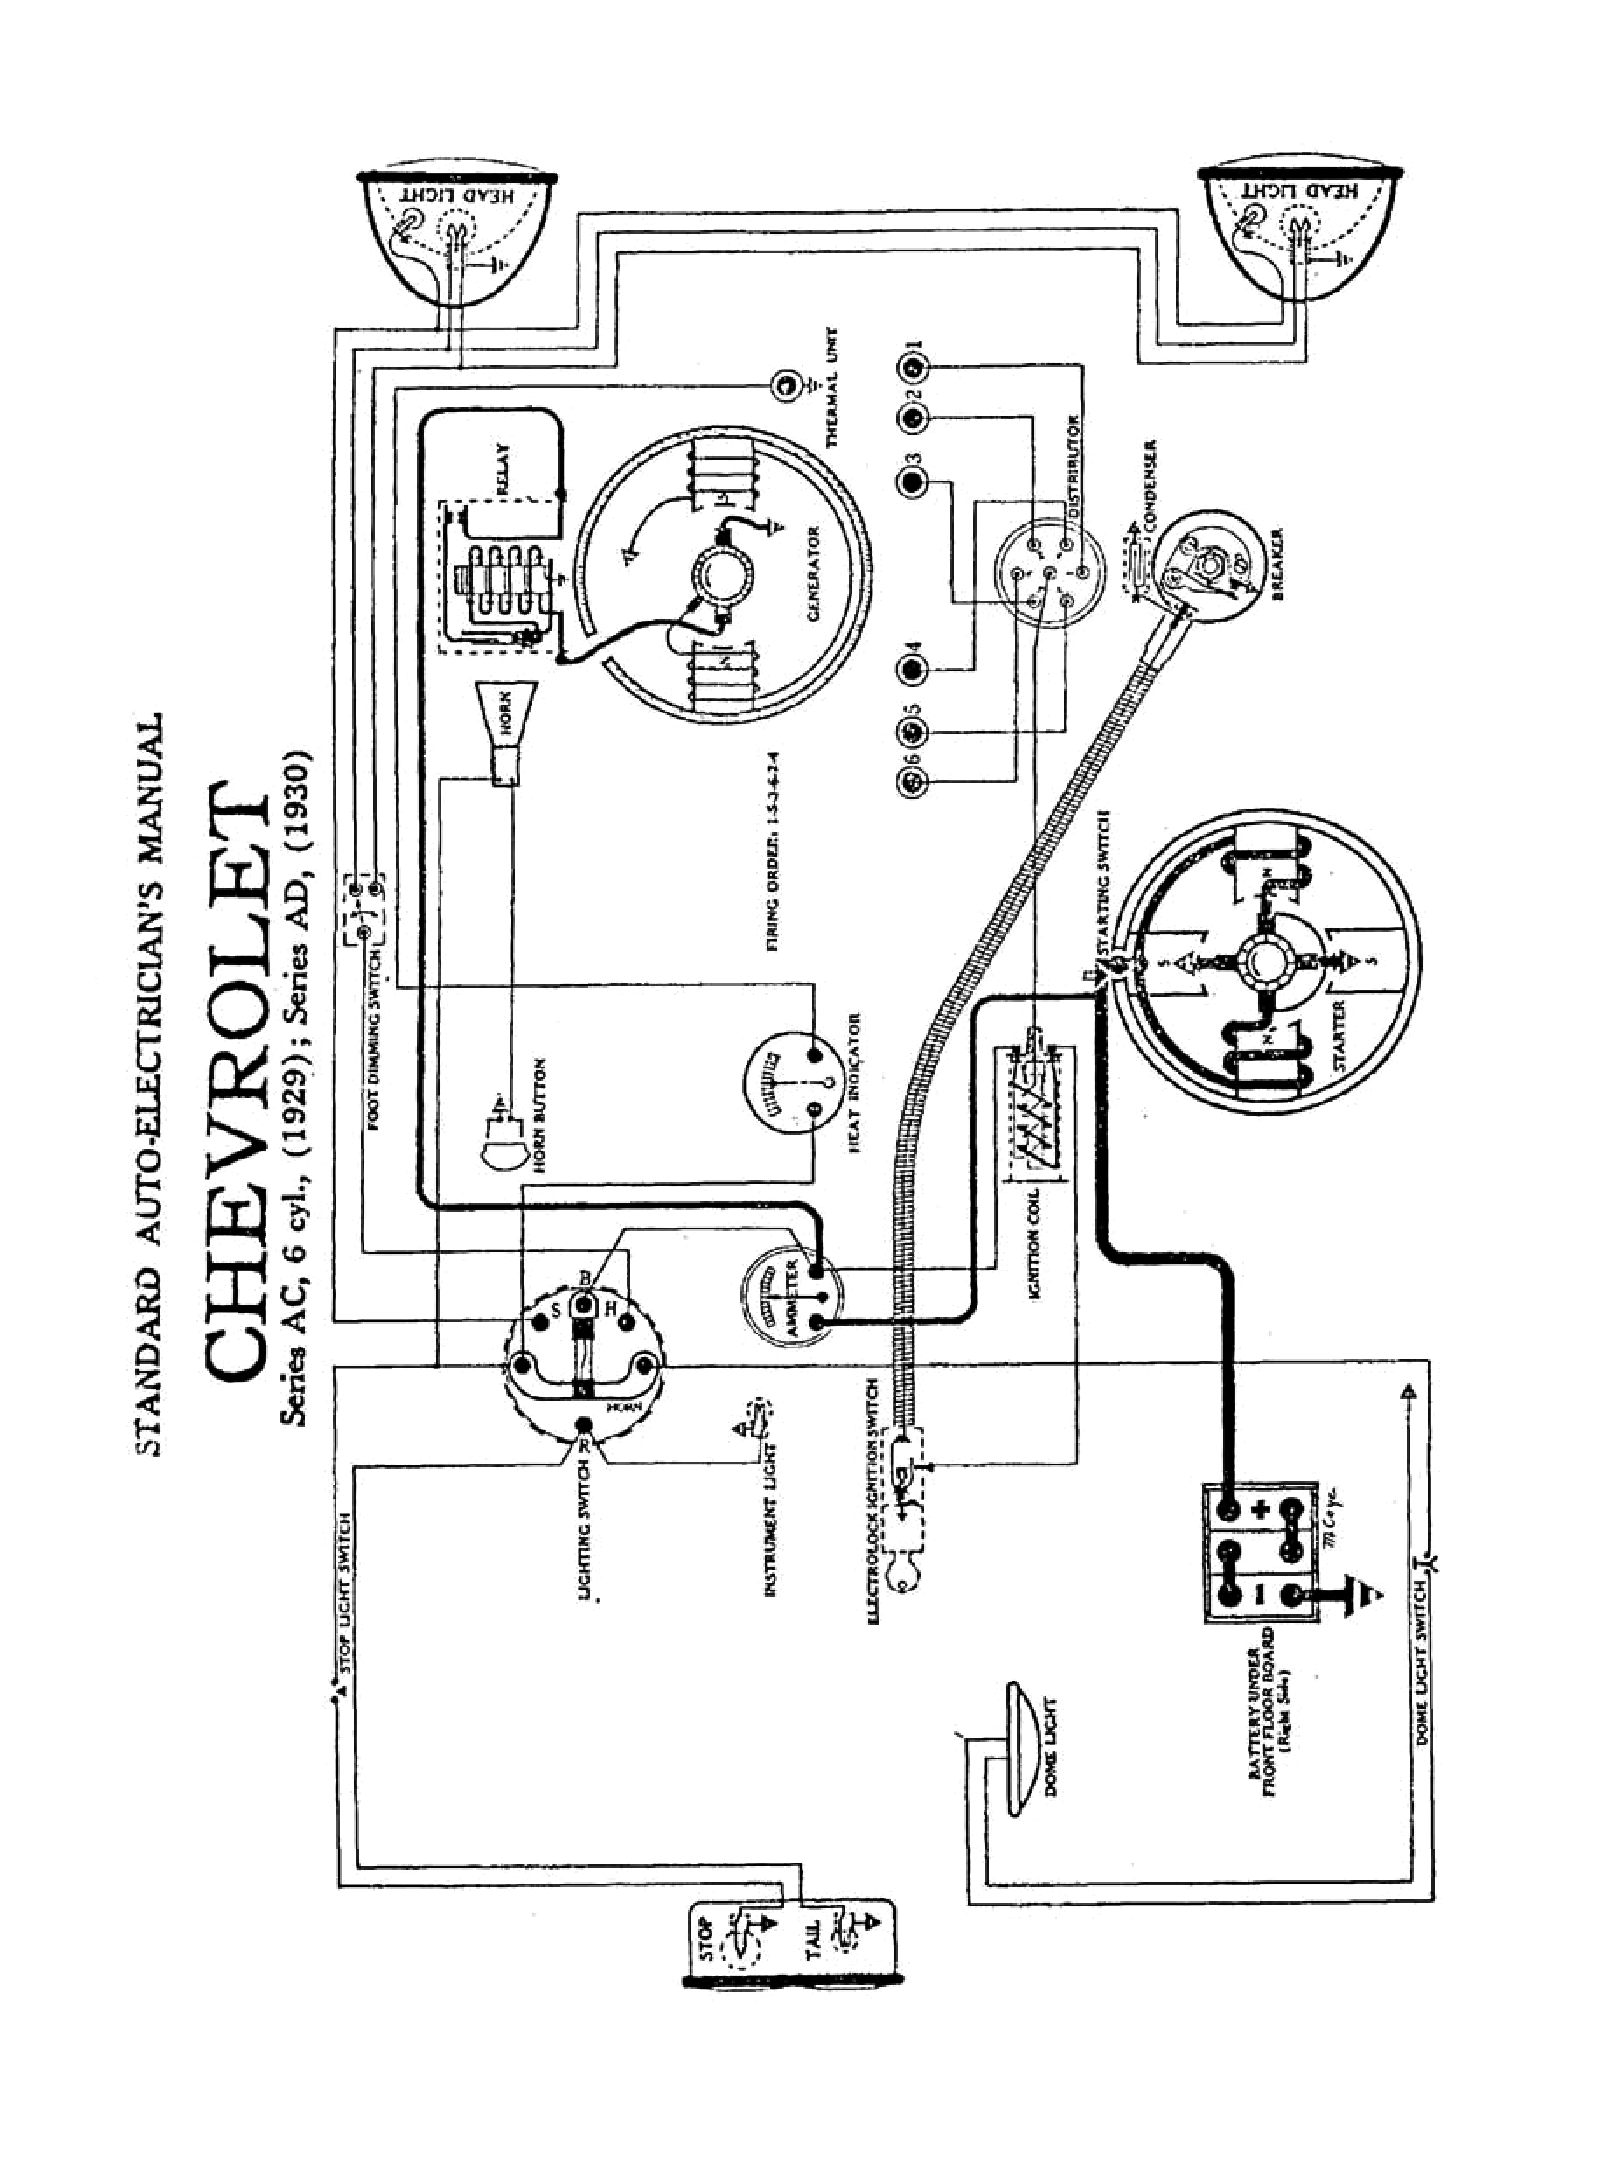 1937 Cord Wiring Diagram Excellent Electrical House Ford 1936 Simple Rh 23 Berlinsky Airline De Engine